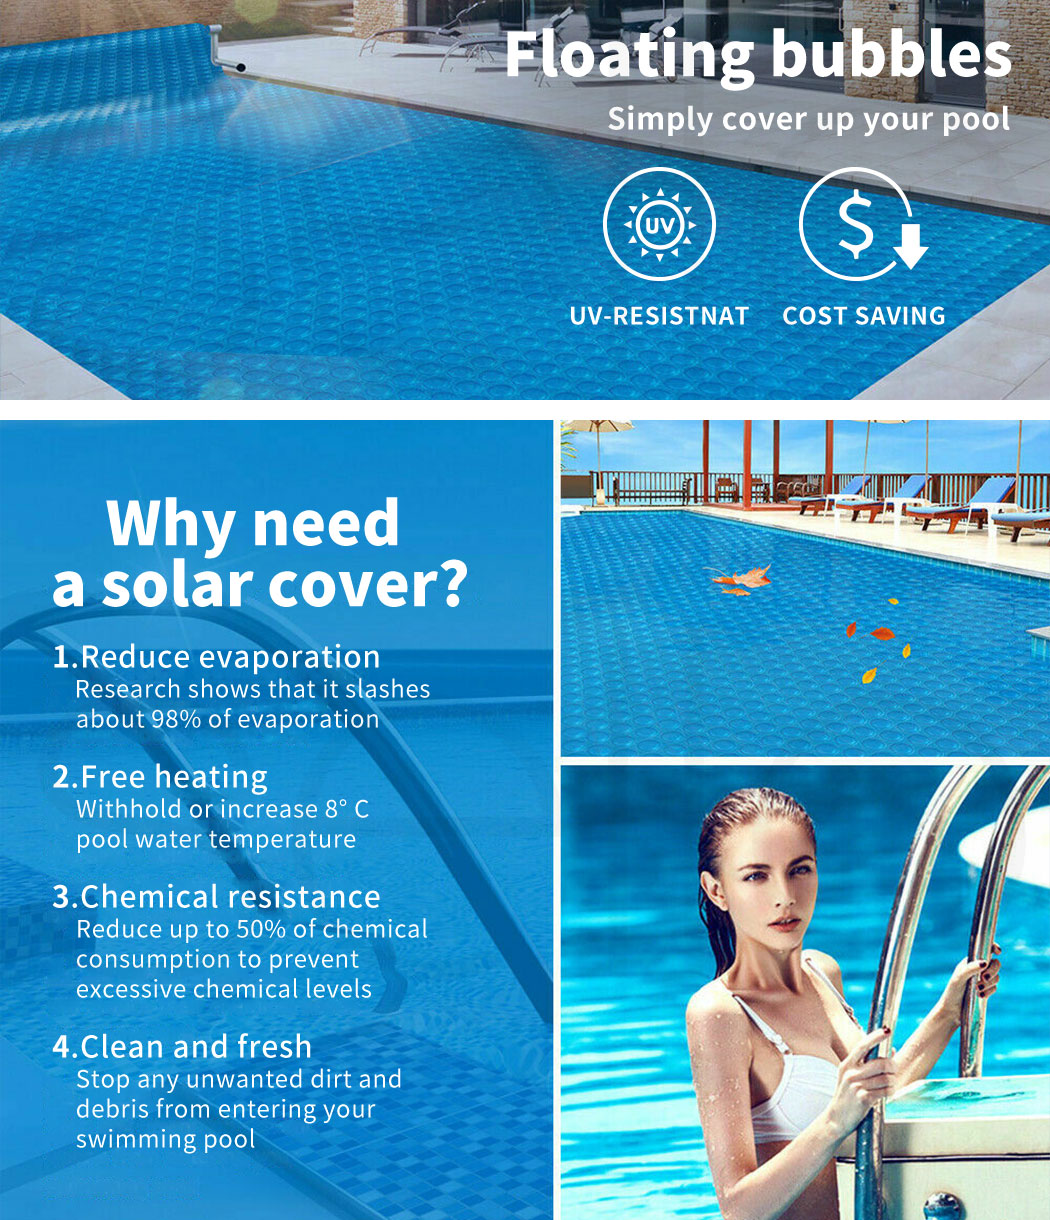 Solar-Swimming-Pool-Cover-400-500-Micron-Outdoor-Bubble-Blanket-Covers-7-Sizes thumbnail 106